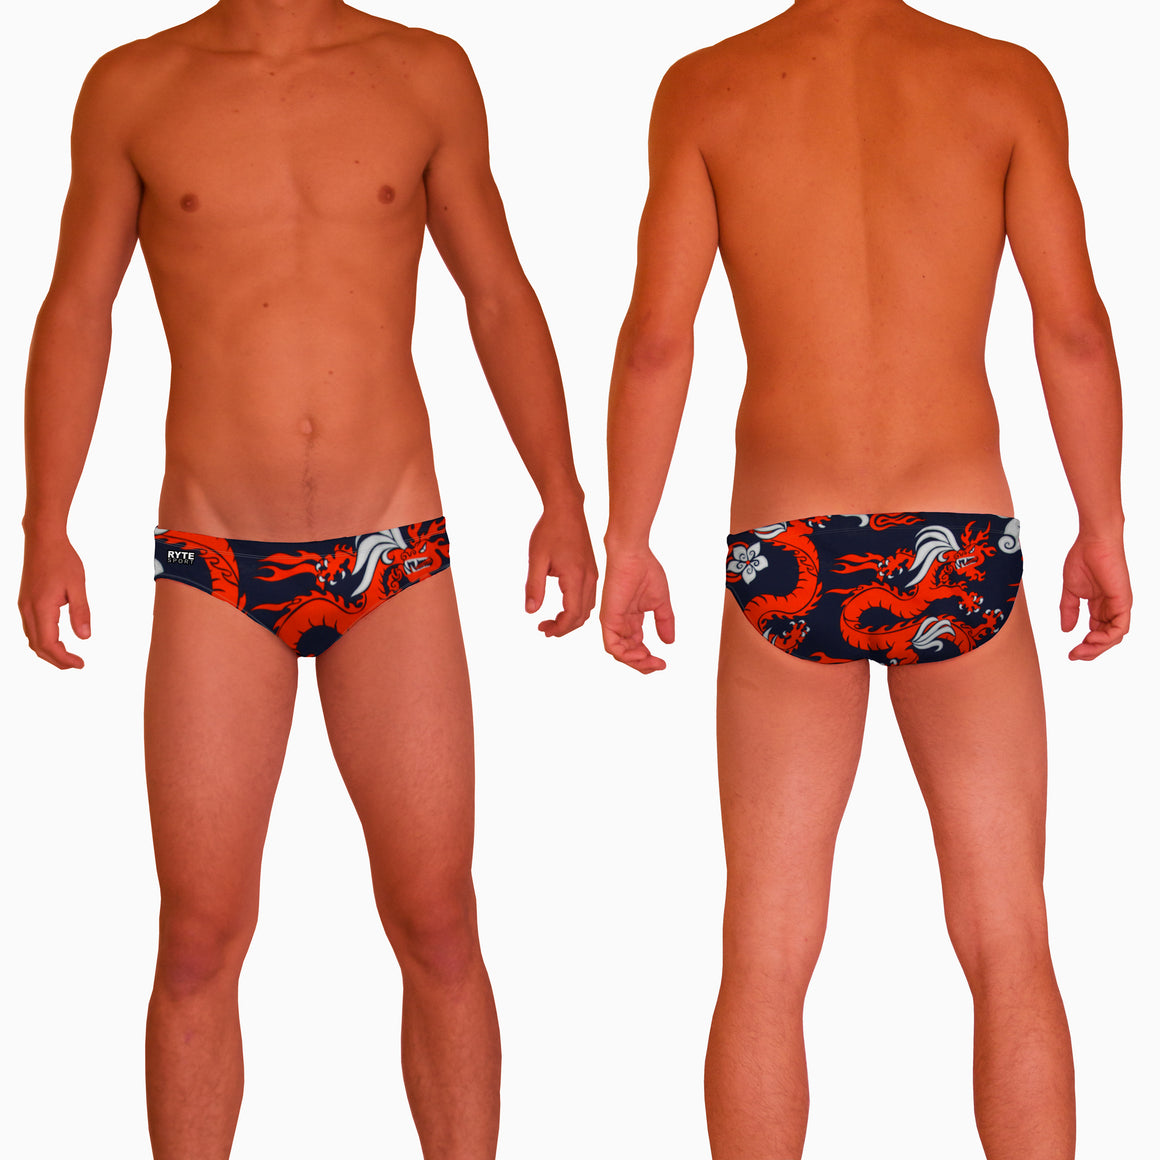 Red Dragon Mens Water Polo Suit  Features:  Compression Fitting PBT/Polyester Blend Fabric with Four-way stretch technology Dual Layer Lined Brief Low Stretch Flat Drawcord Flatlock Stitch Construction prevents chafe Turned In Liner Seams for Optimum Comfort Chlorine Resistant Fabric